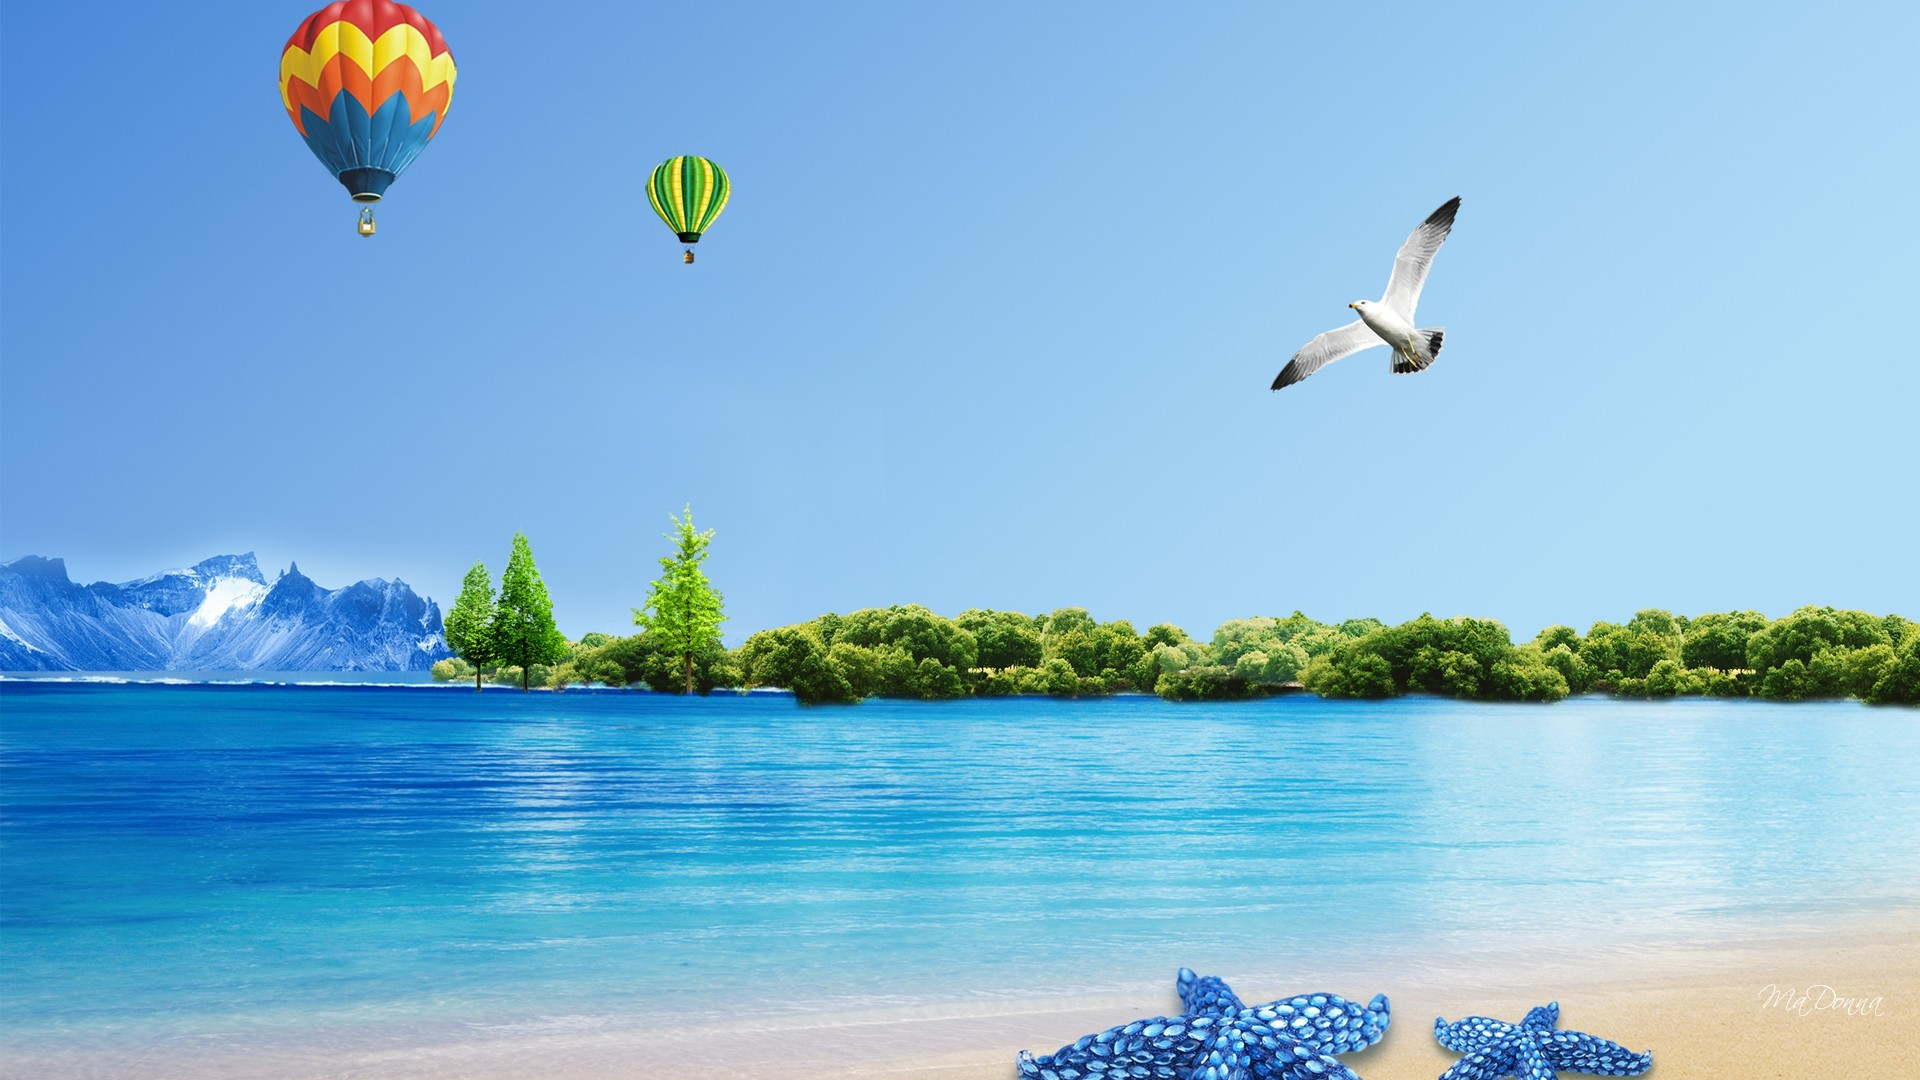 1920x1080 Summer Backgrounds Wallpaper